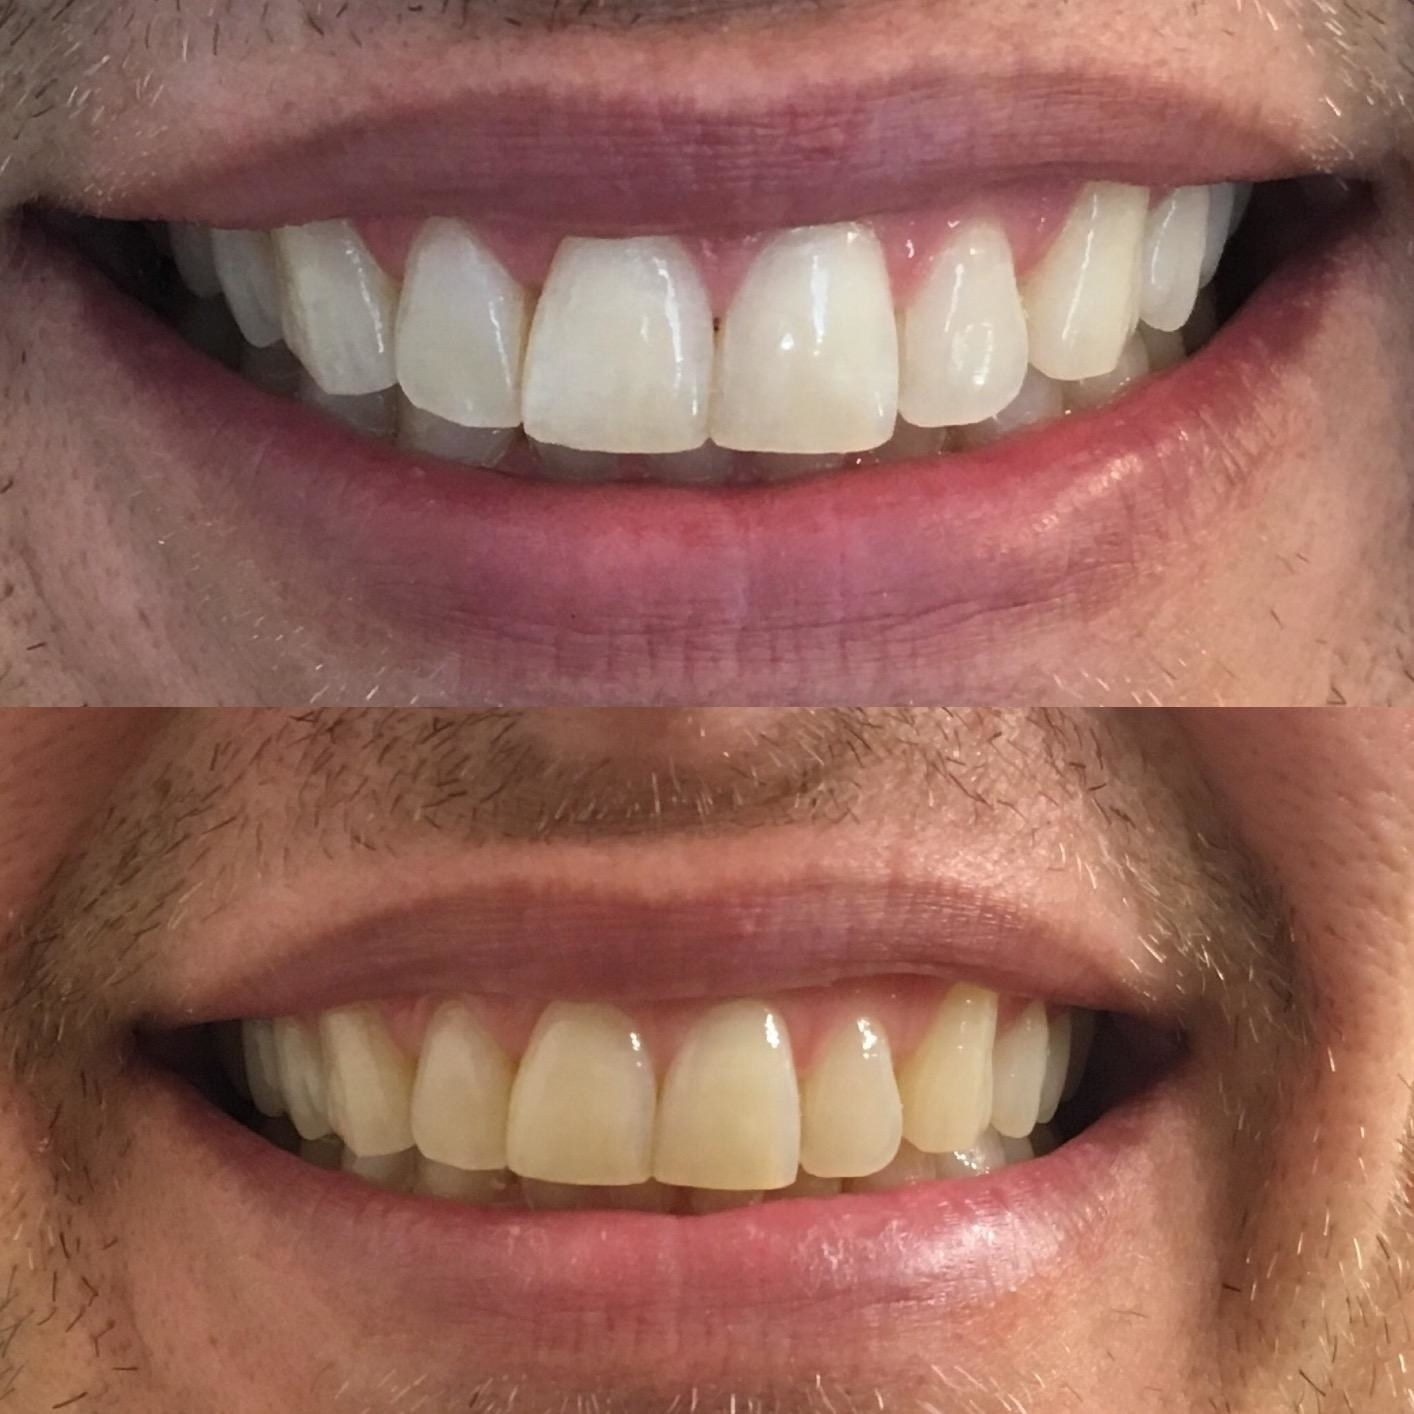 reviewer photo of a before photo with yellow teeth and an after photo with white teeth having used the whitening strips